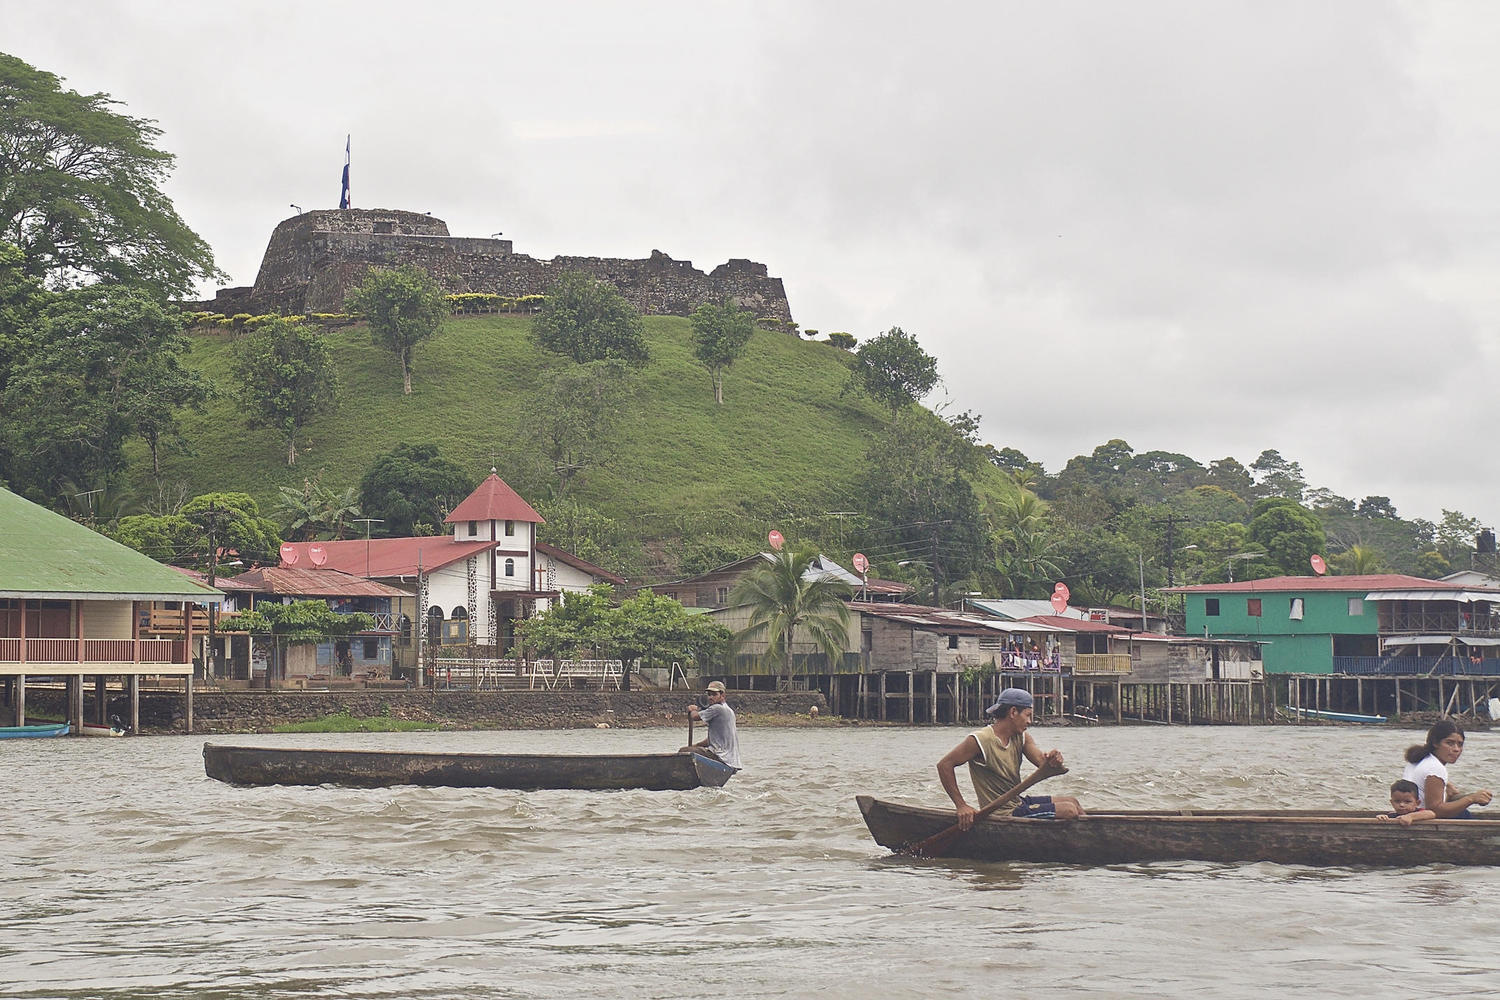 El Castillo fort with river traffic below